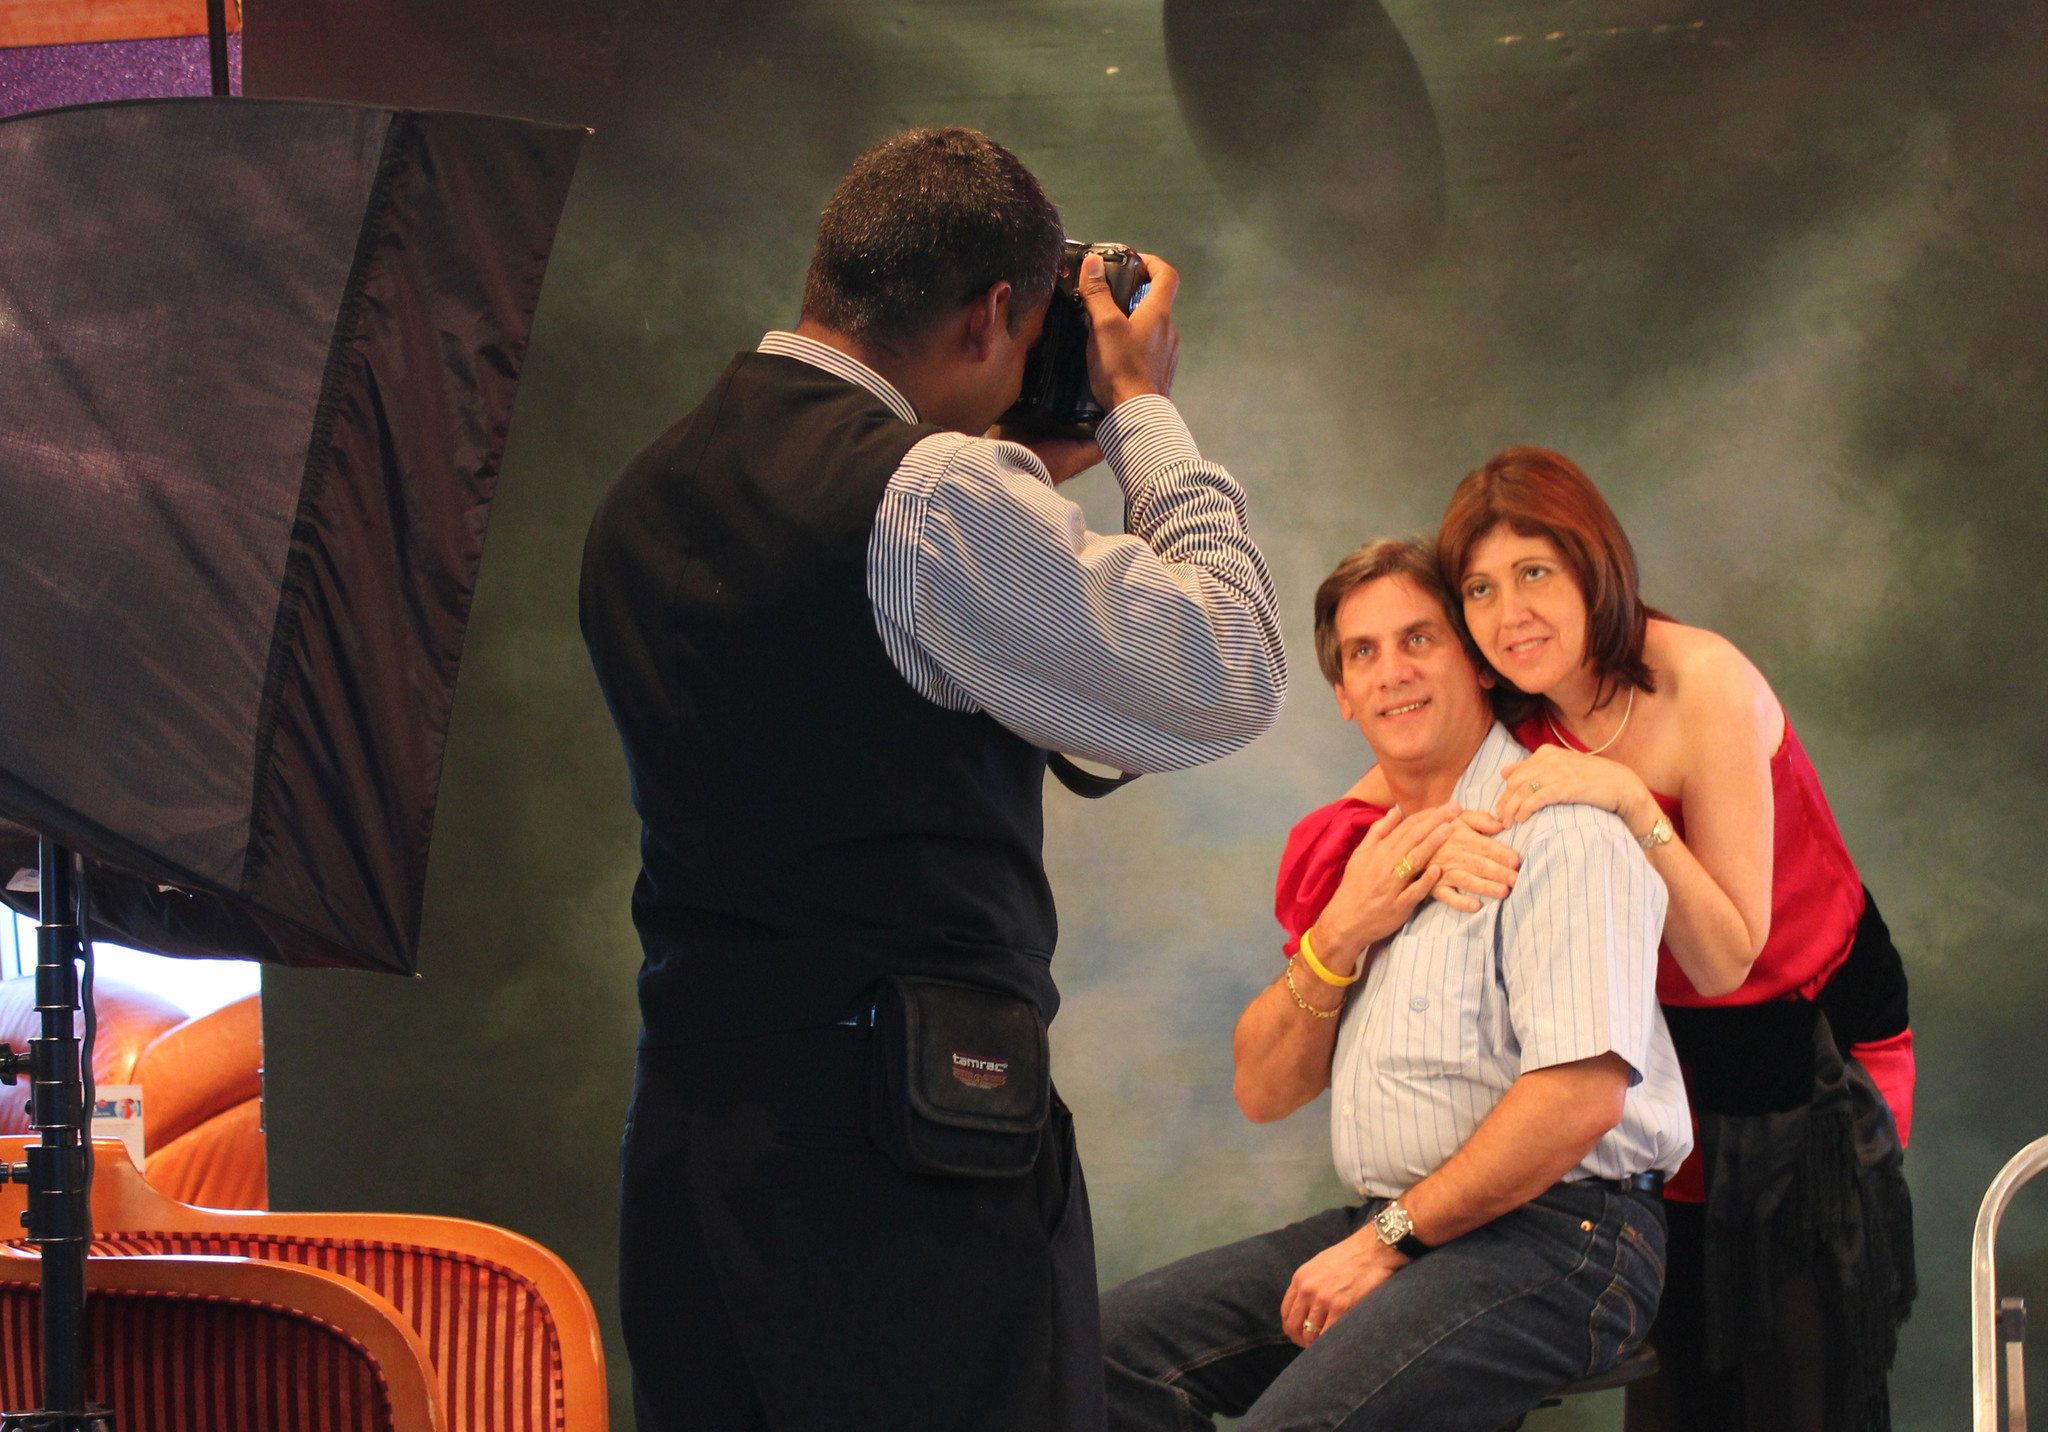 Cruise ships offer many opportunities for passengers to have their pictures taken.